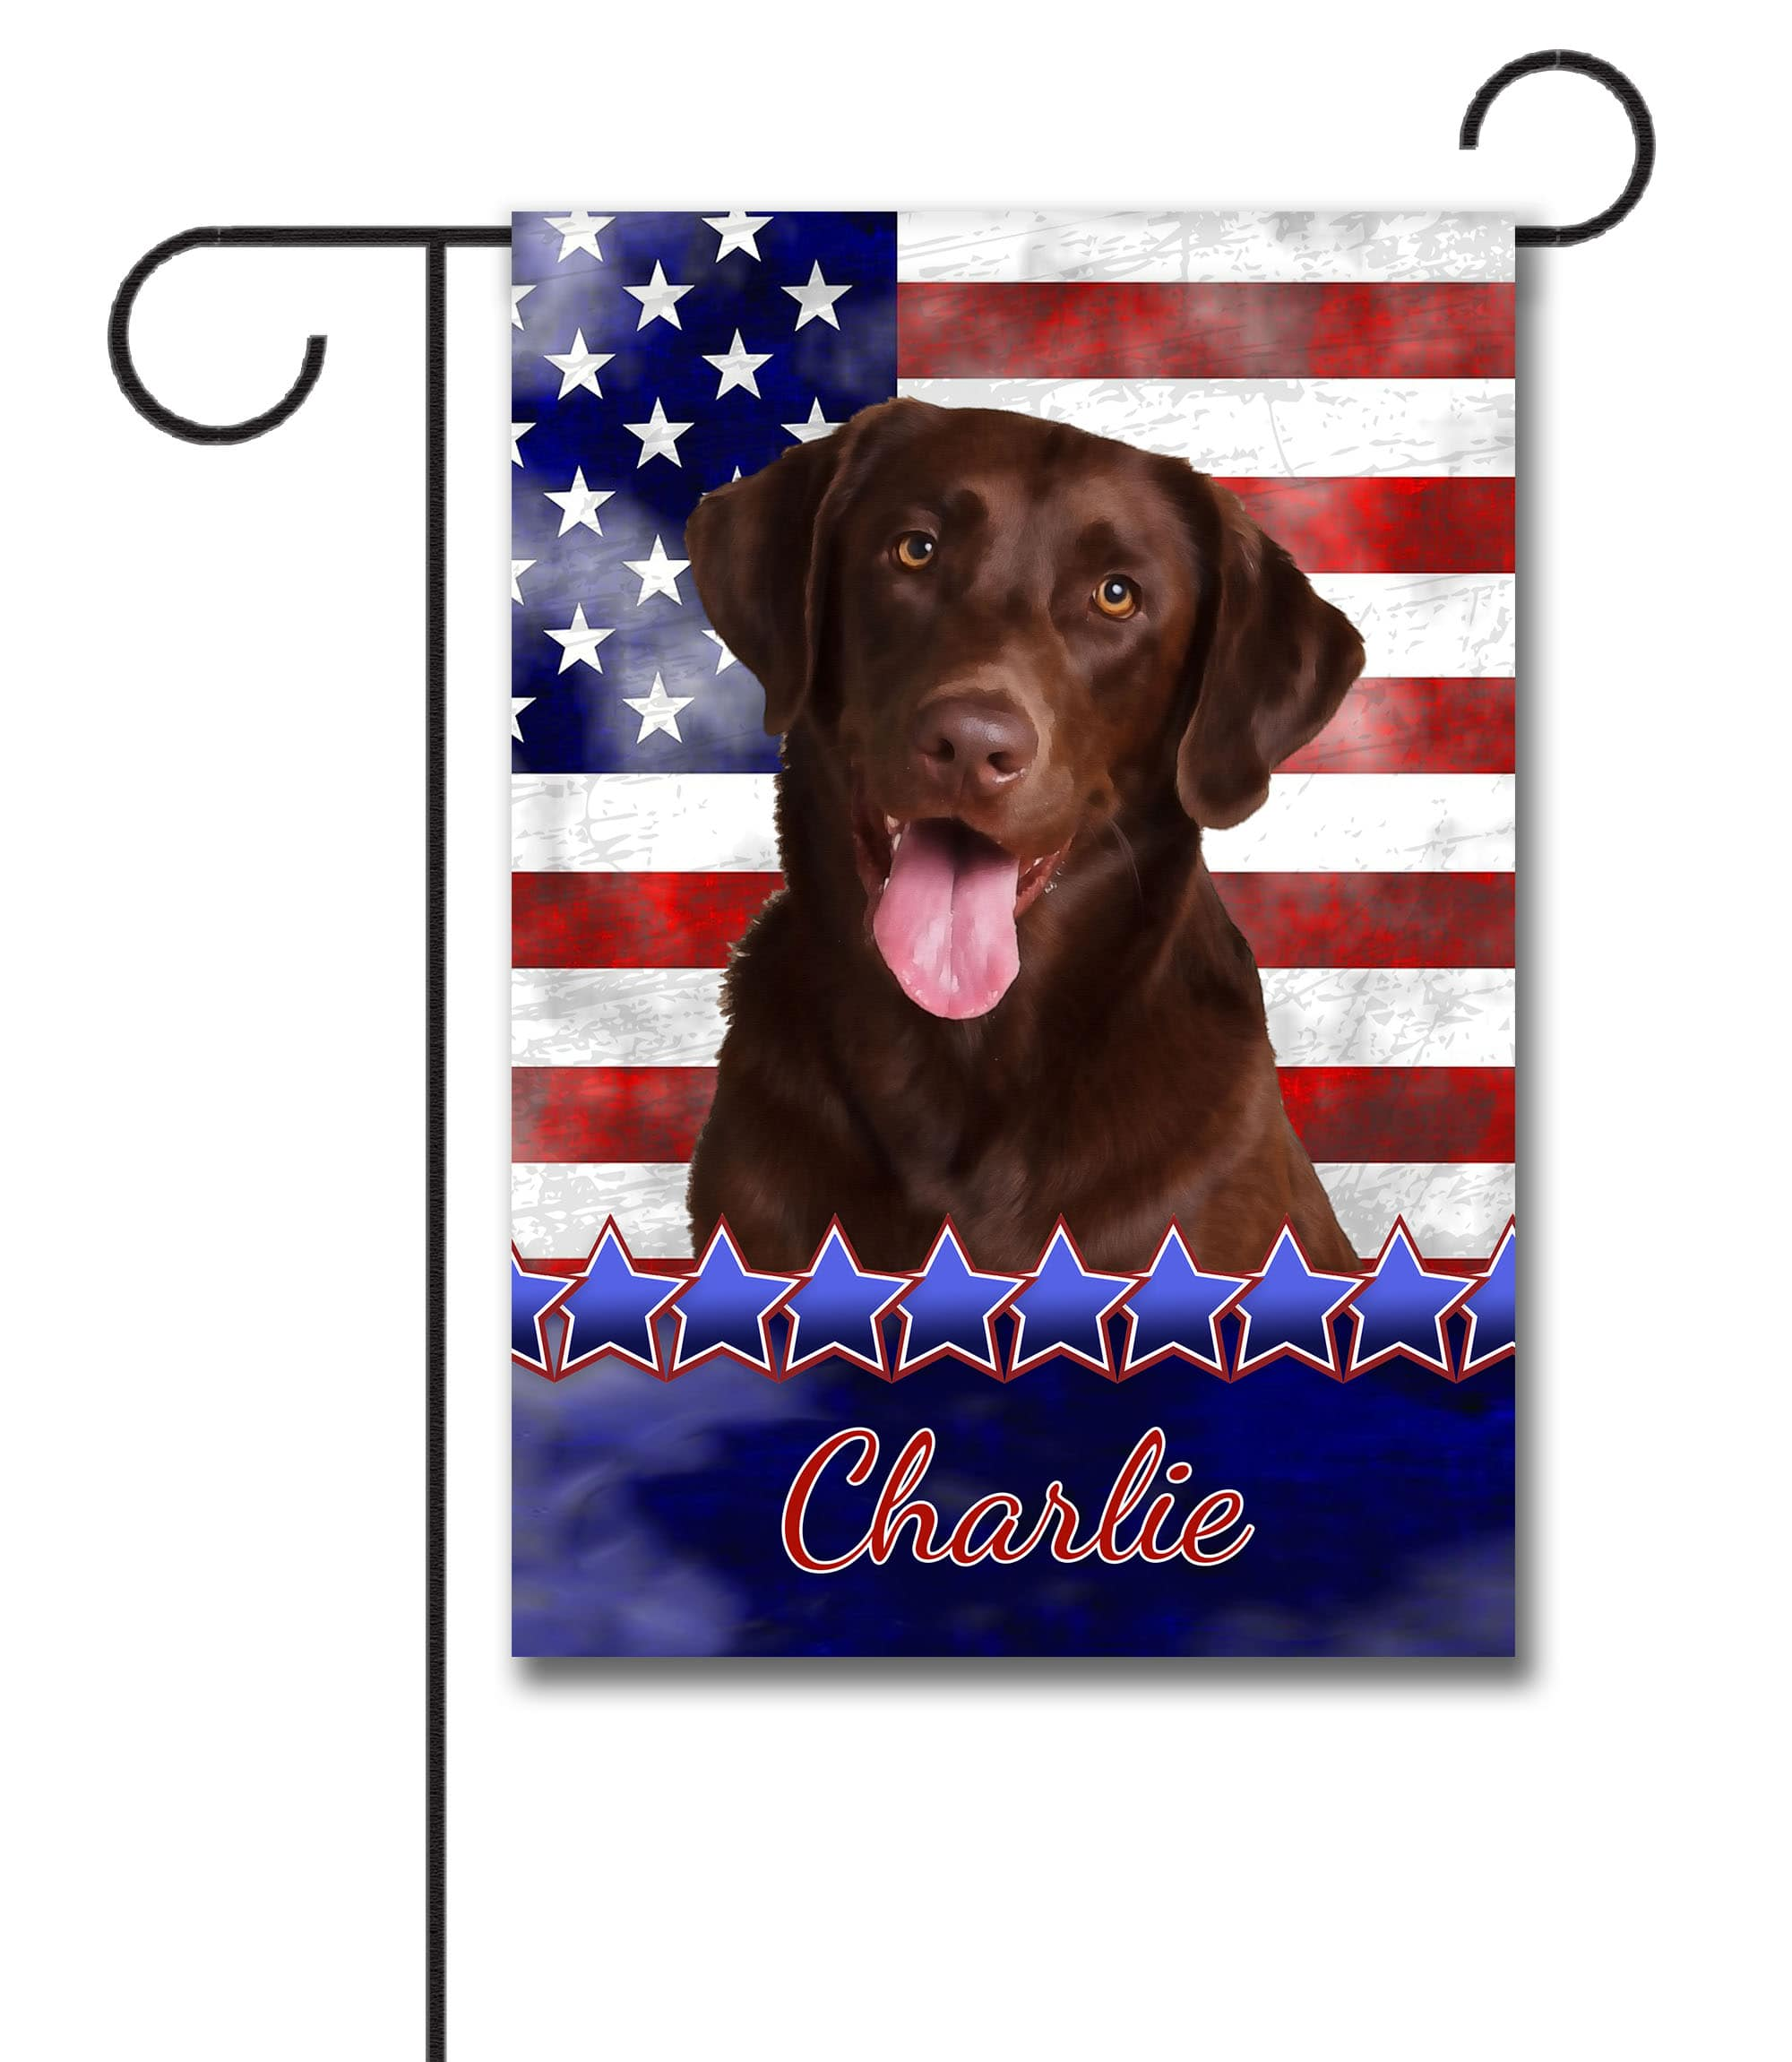 Mailbox Covers Patio Lawn Garden Best Of Breed Chocolate Labrador Patriotic I Dog Breed Mail Box Cover